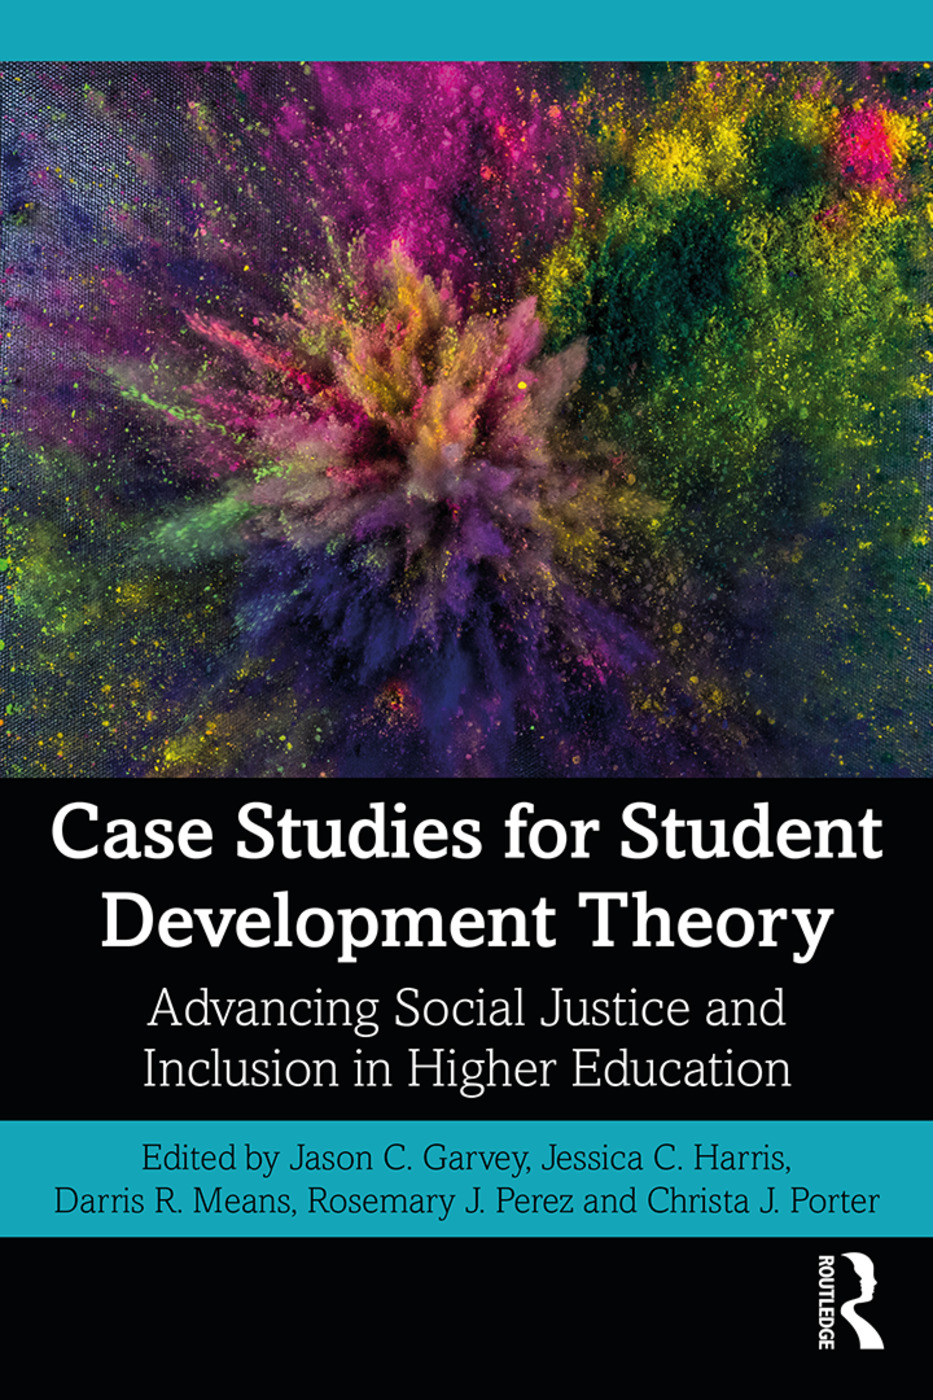 Case Studies for Student Development Theory: Advancing Social Justice and Inclusion in Higher Education, 1st Edition (Paperback) book cover